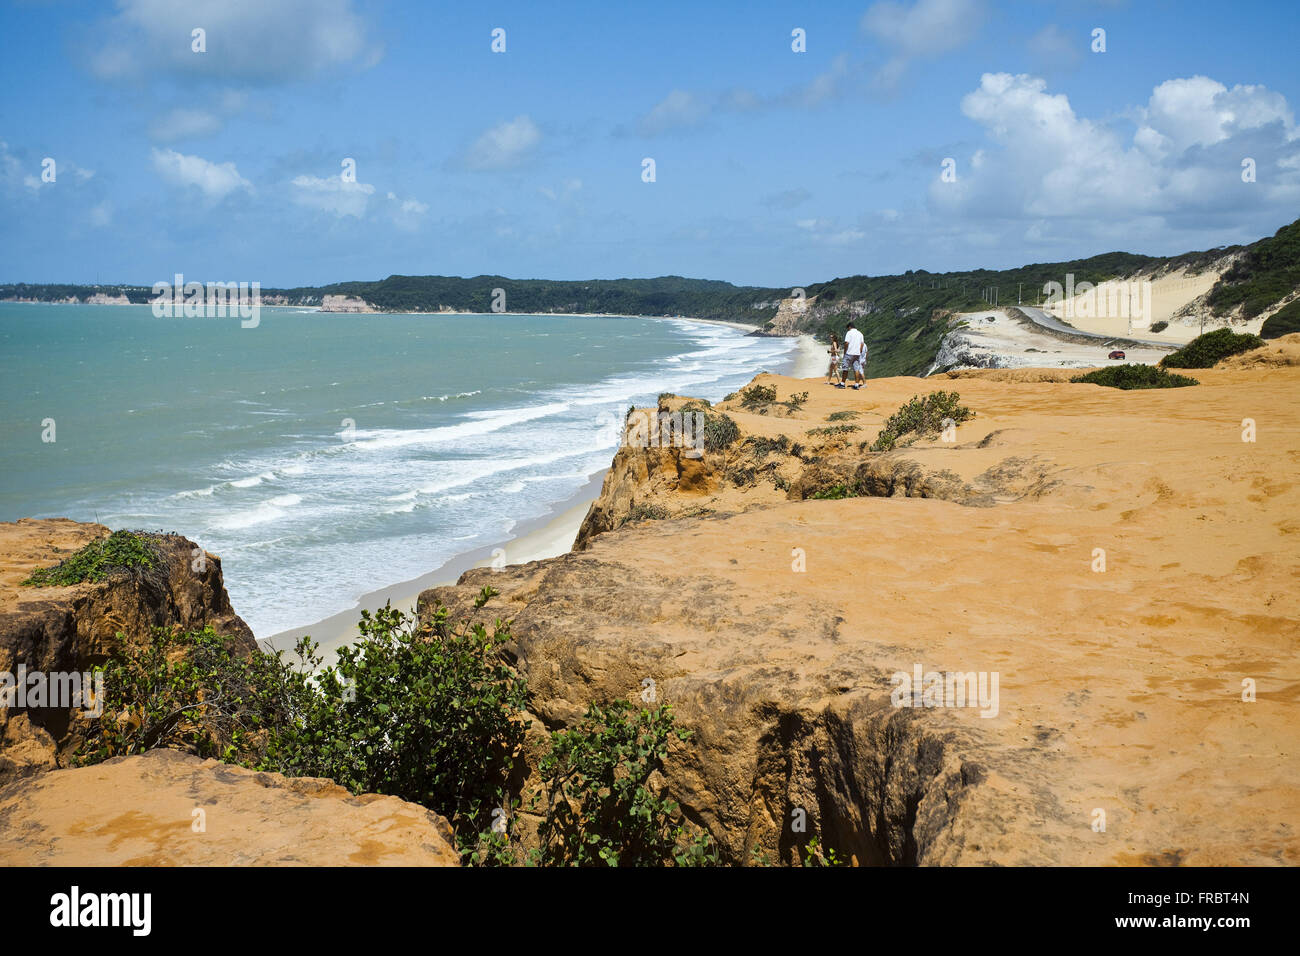 Beach municipality located in eastern Natal region - Stock Image